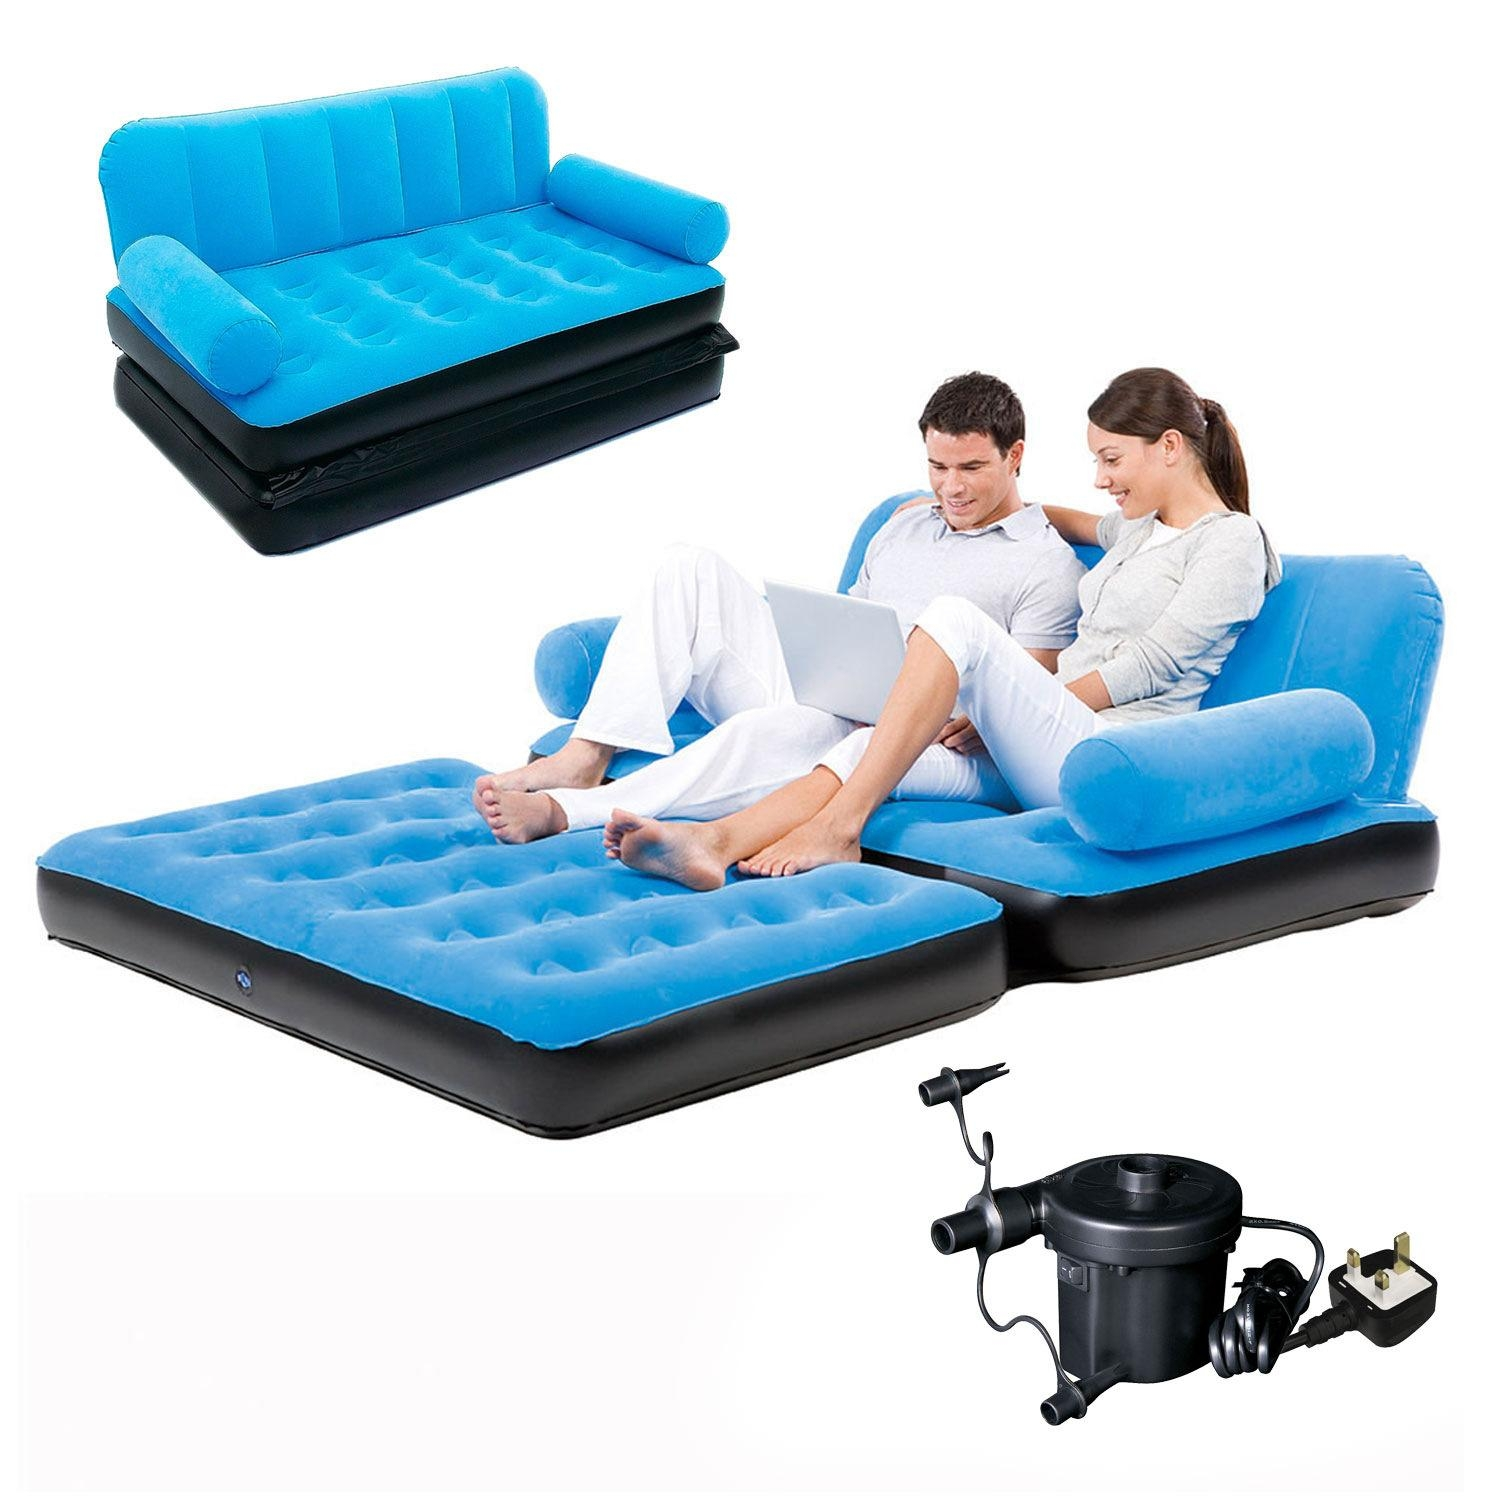 Inflatable Sofa Bed | Roselawnlutheran Inside Intex Inflatable Sofas (View 17 of 20)